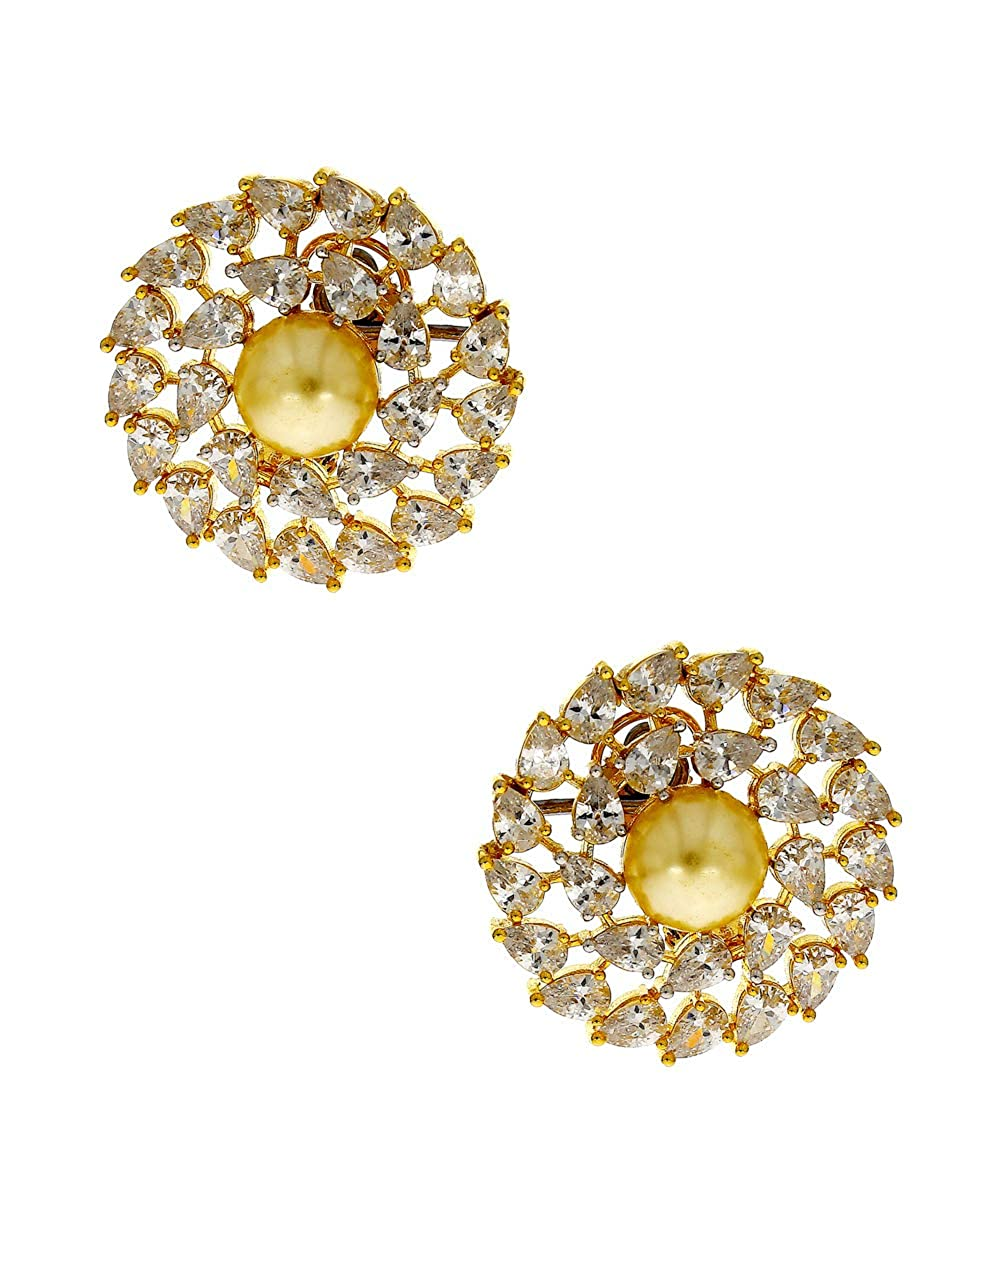 Anuradha Art Golden Finish Styled With Studded Stone Fancy Studs Earrings For Women//Girls